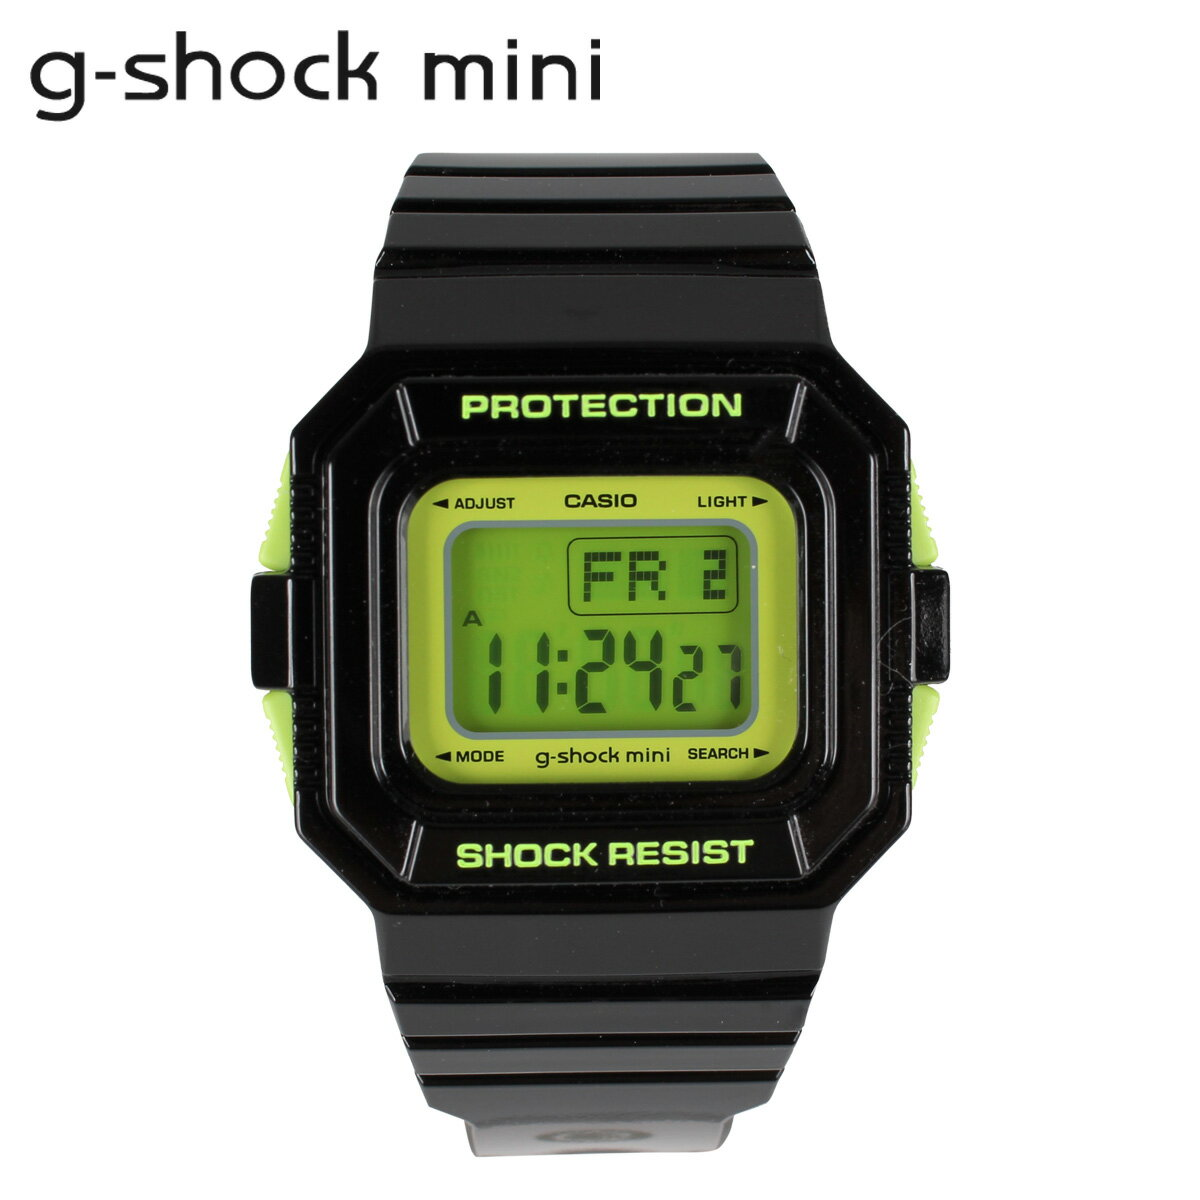 腕時計, レディース腕時計 2000OFF CASIO g-shock mini GMN-550-1CJR G G-